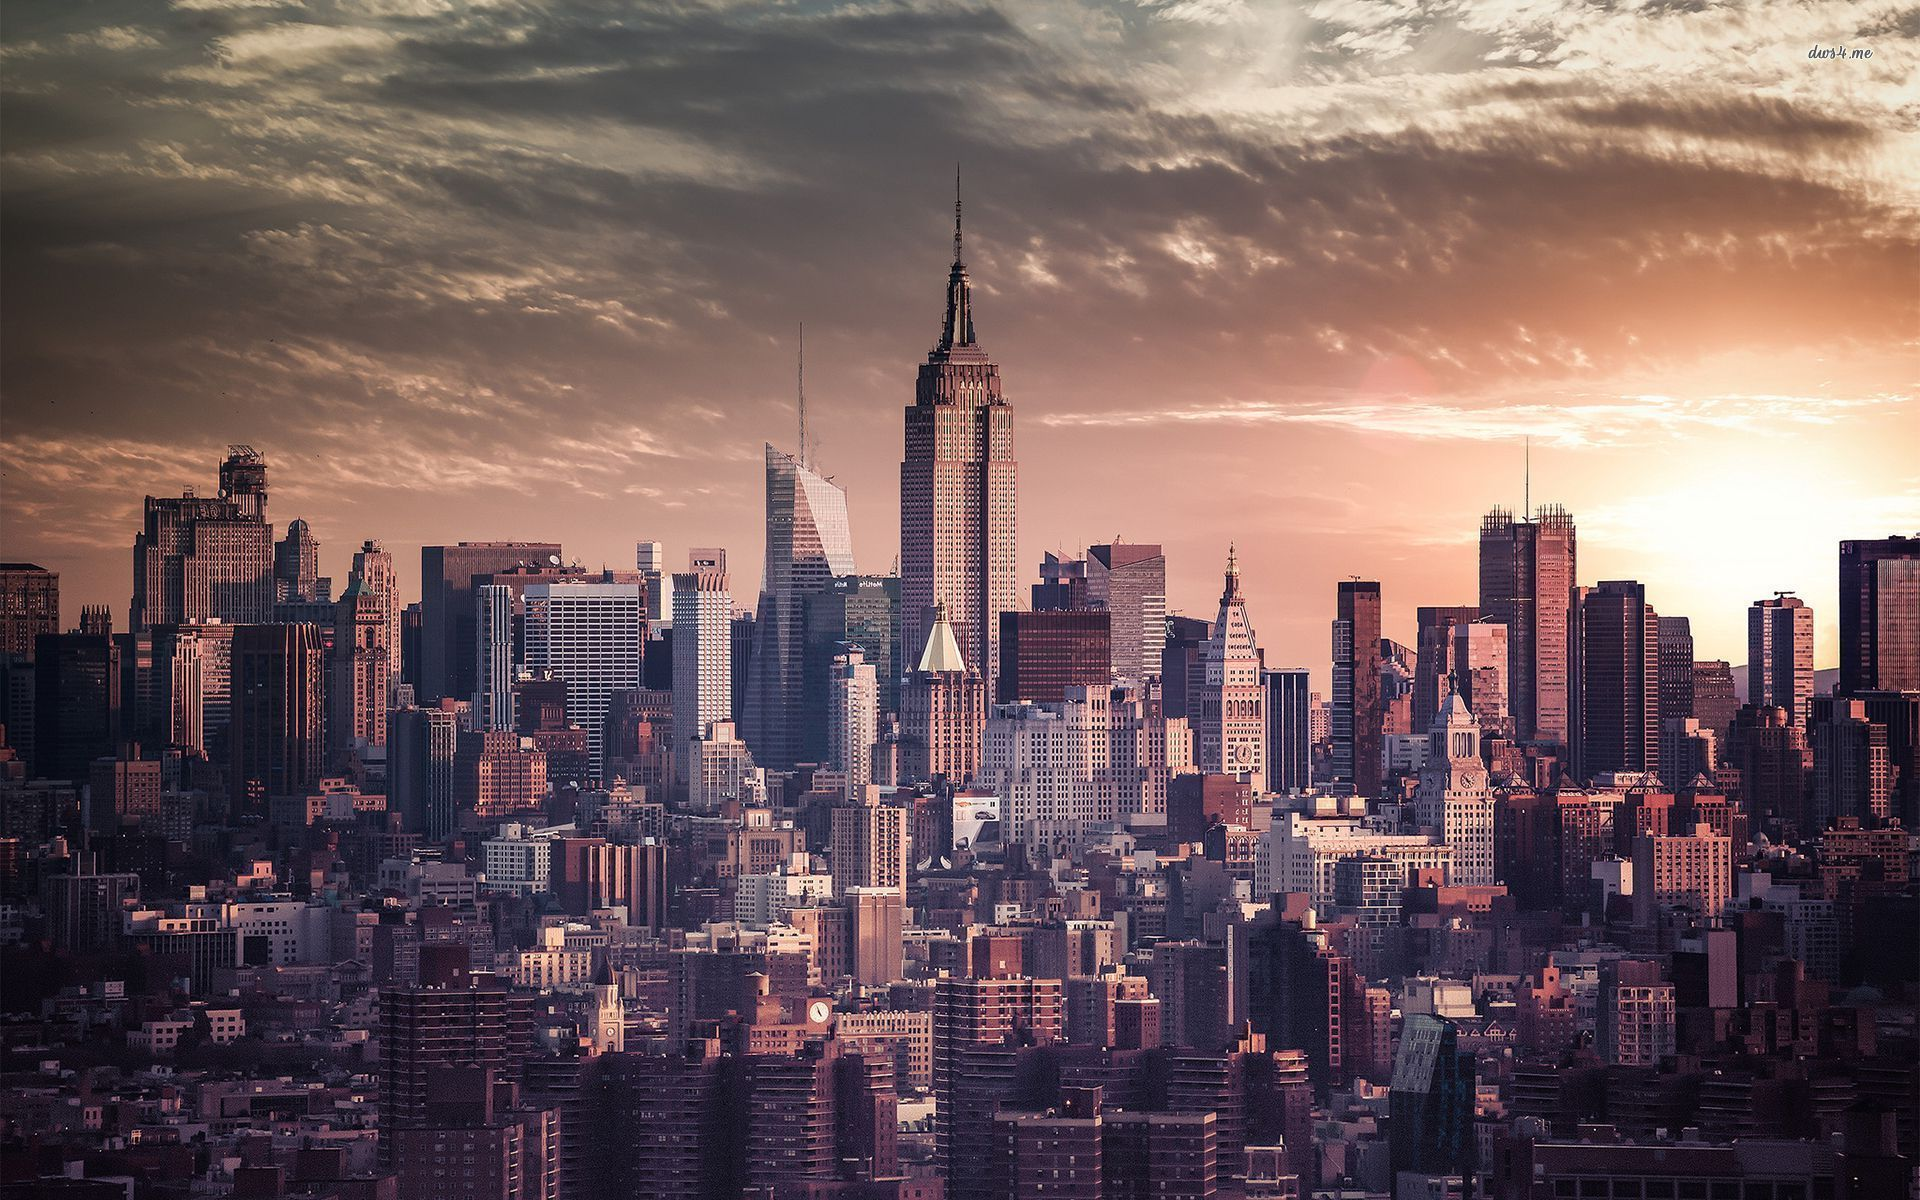 Pin By Lune On New York New York City Background New York Wallpaper City Wallpaper